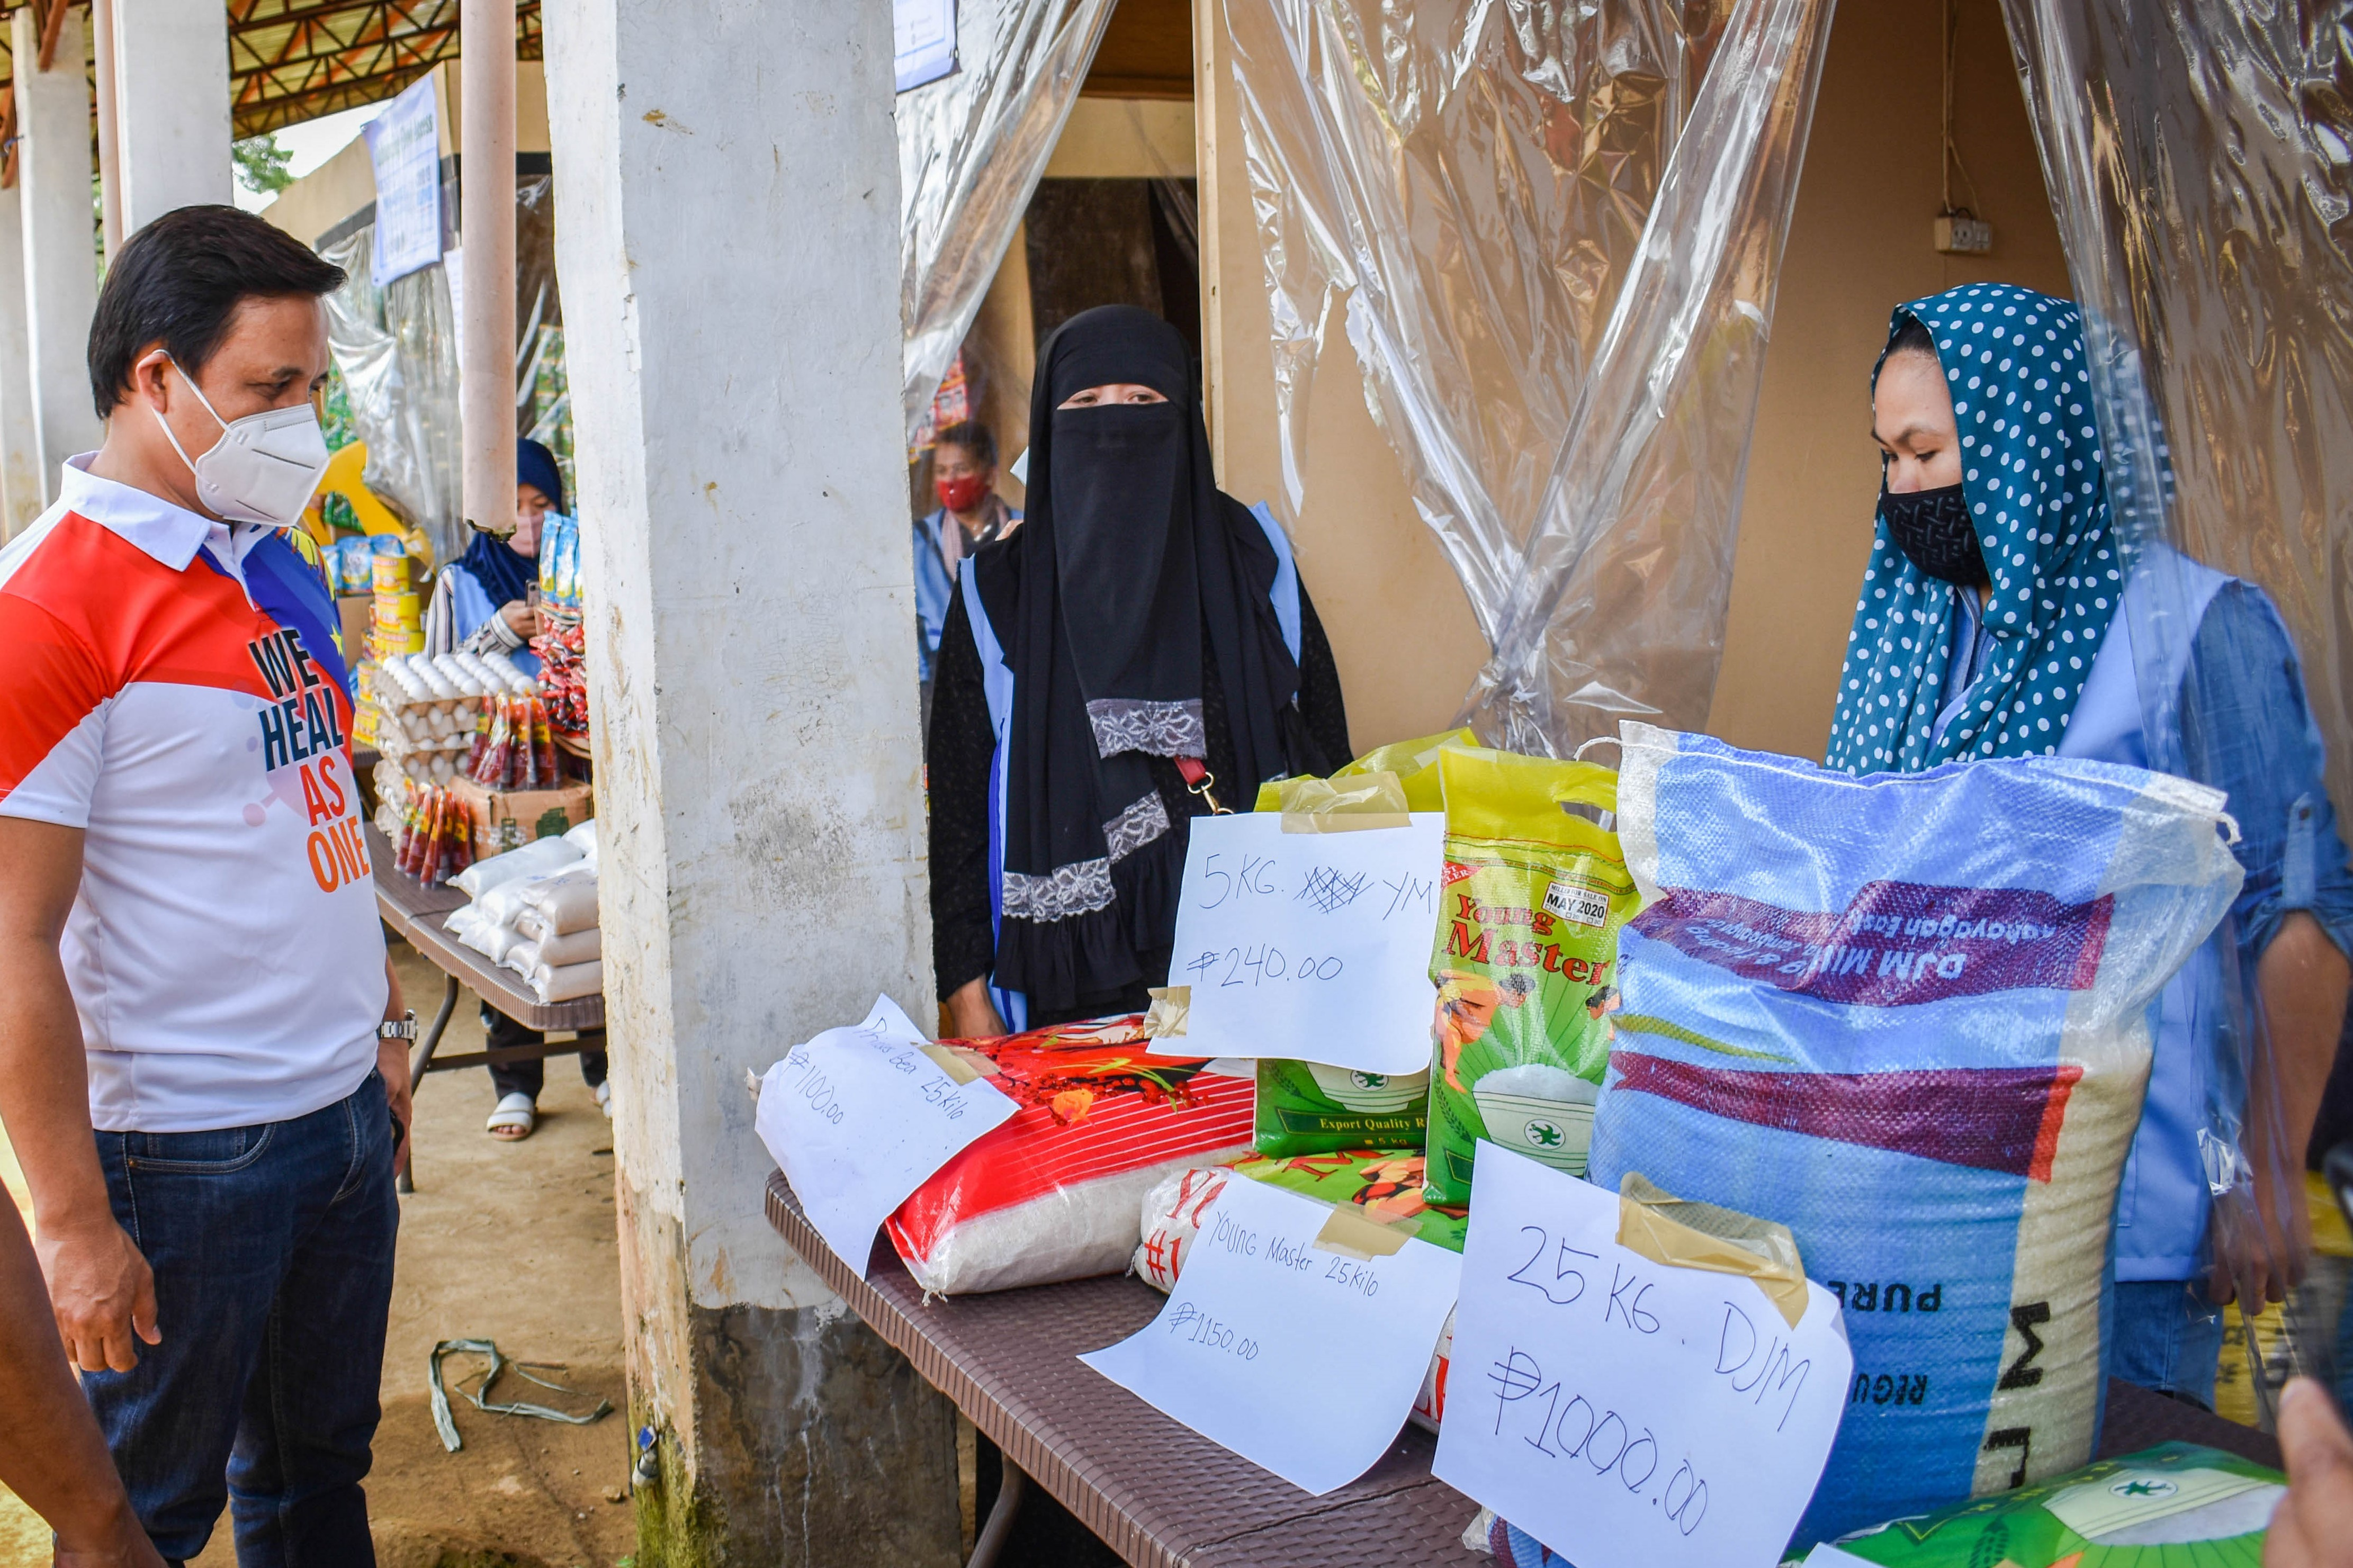 A satellite market set up by UN-Habitat in the village of Sagonsongan in Marawi city, Philippines to provide fairly priced food and essential goods and discourage travel to city centre markets during the COVID-19 crisis